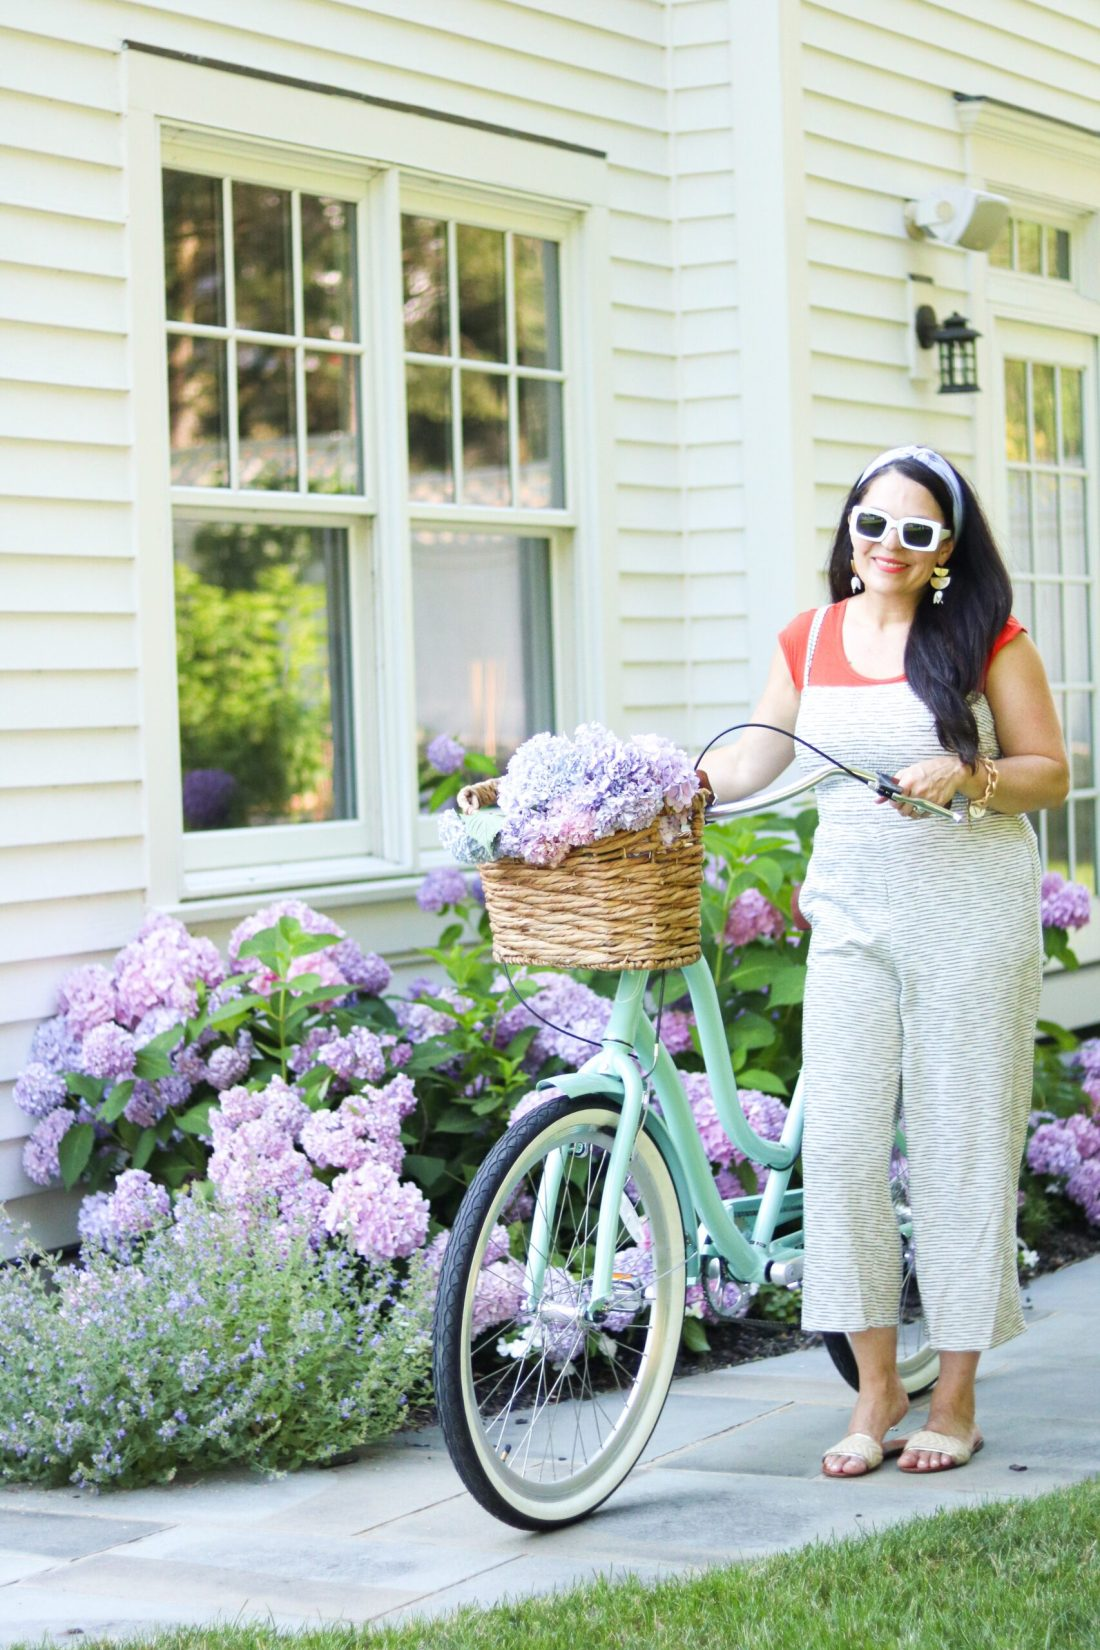 Cutest bike cruiser to enjoy at the beach, around the neighborhood, or the city    Darling Darleen Top CT lifestyle blogger 3 favorite simple summer activities that we like to do as a family and is budget friendly will create lasting memories.    DARLING darleen Top CT Lifestyle Blogger